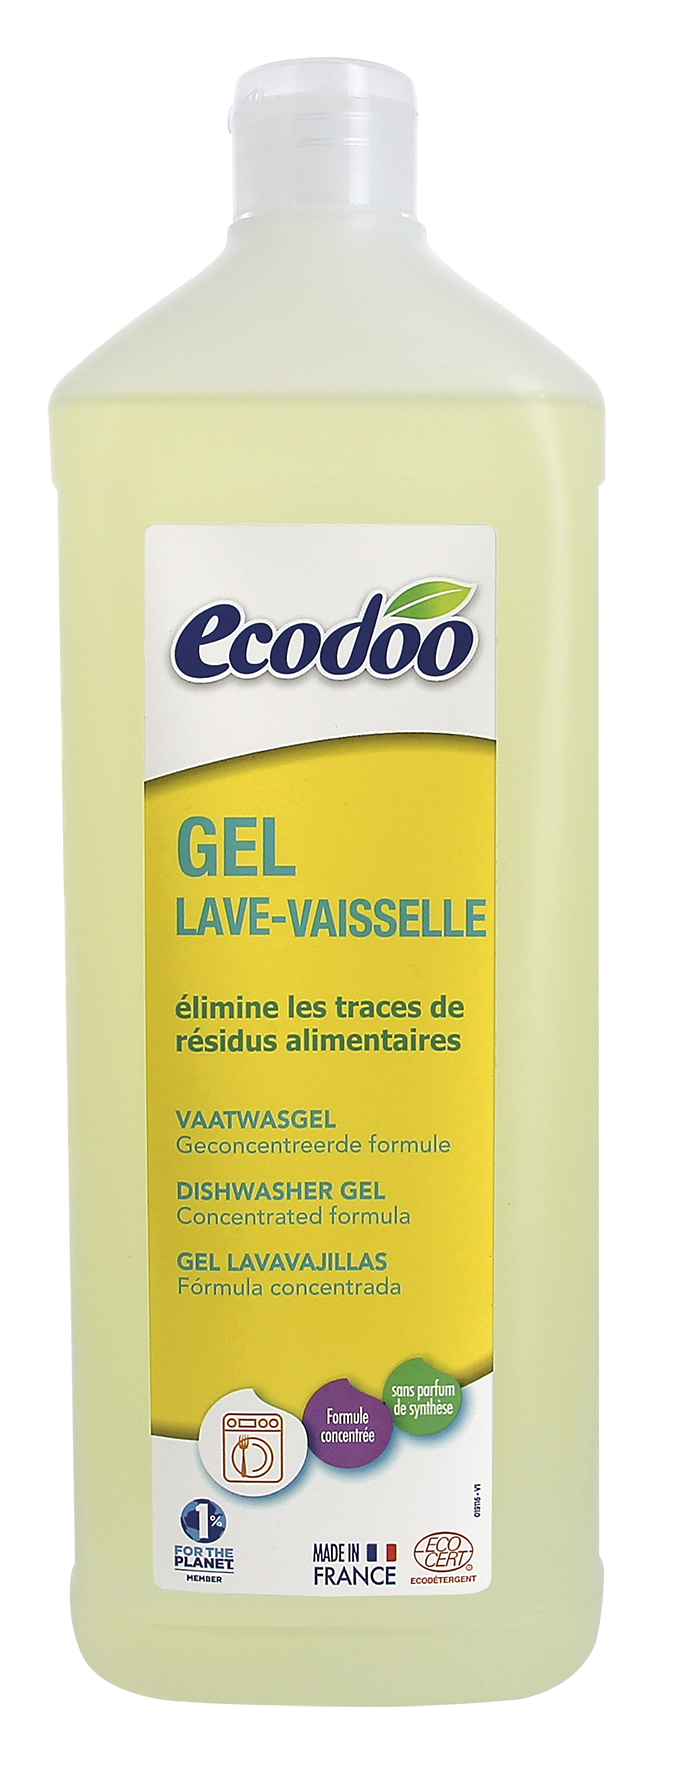 Gel lave-vaisselle, Ecodoo (1 L)